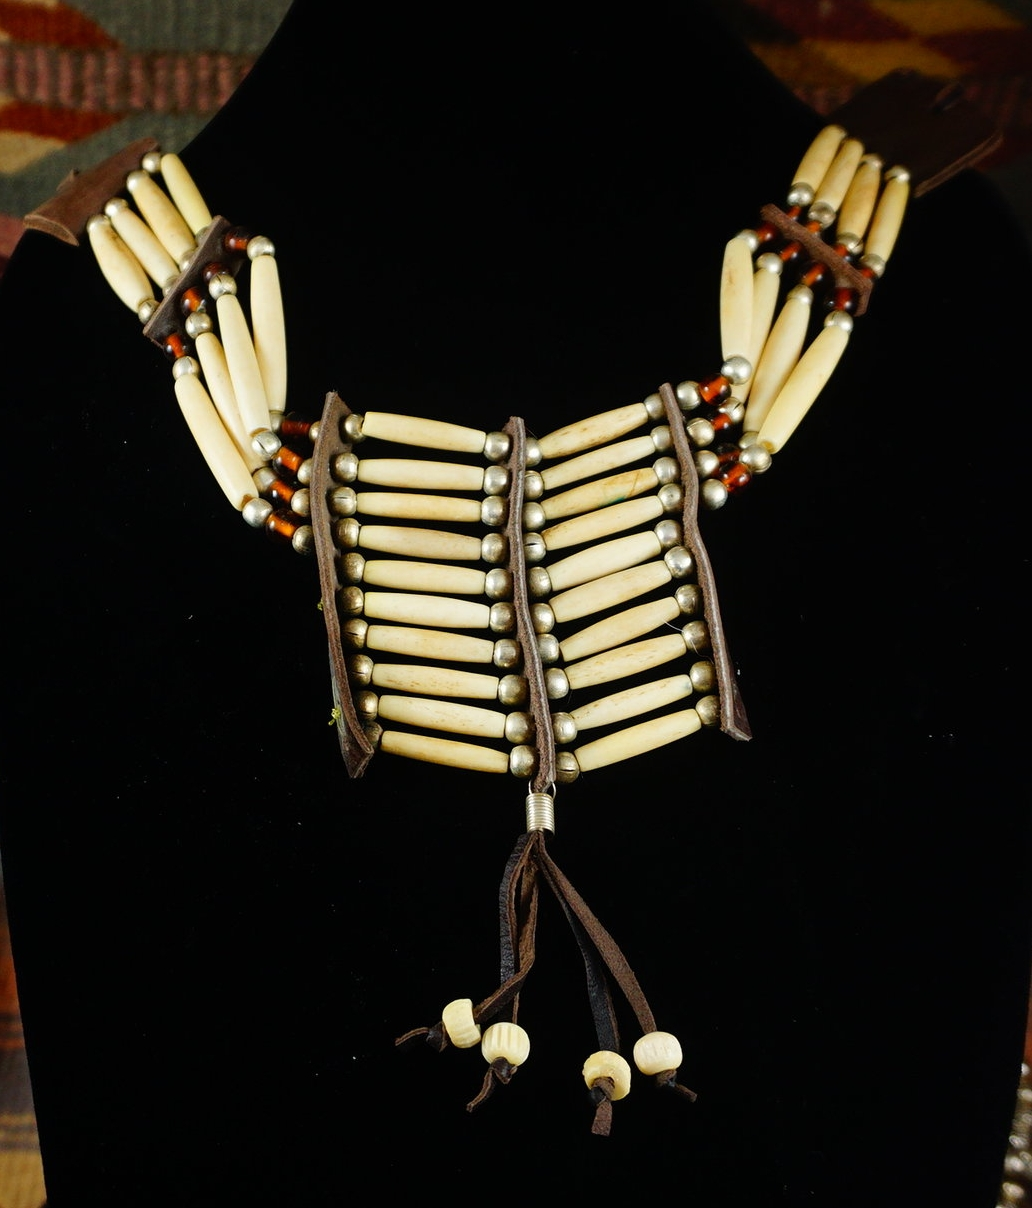 44b1f958a9fbd Item #855B- Vintage Sioux Bone, Silver and Amber Glass Beaded Choker  Necklace —*Ceramic/Bone/Seed Bead Necklaces- EAGLE ROCK TRADING POST-Native  ...